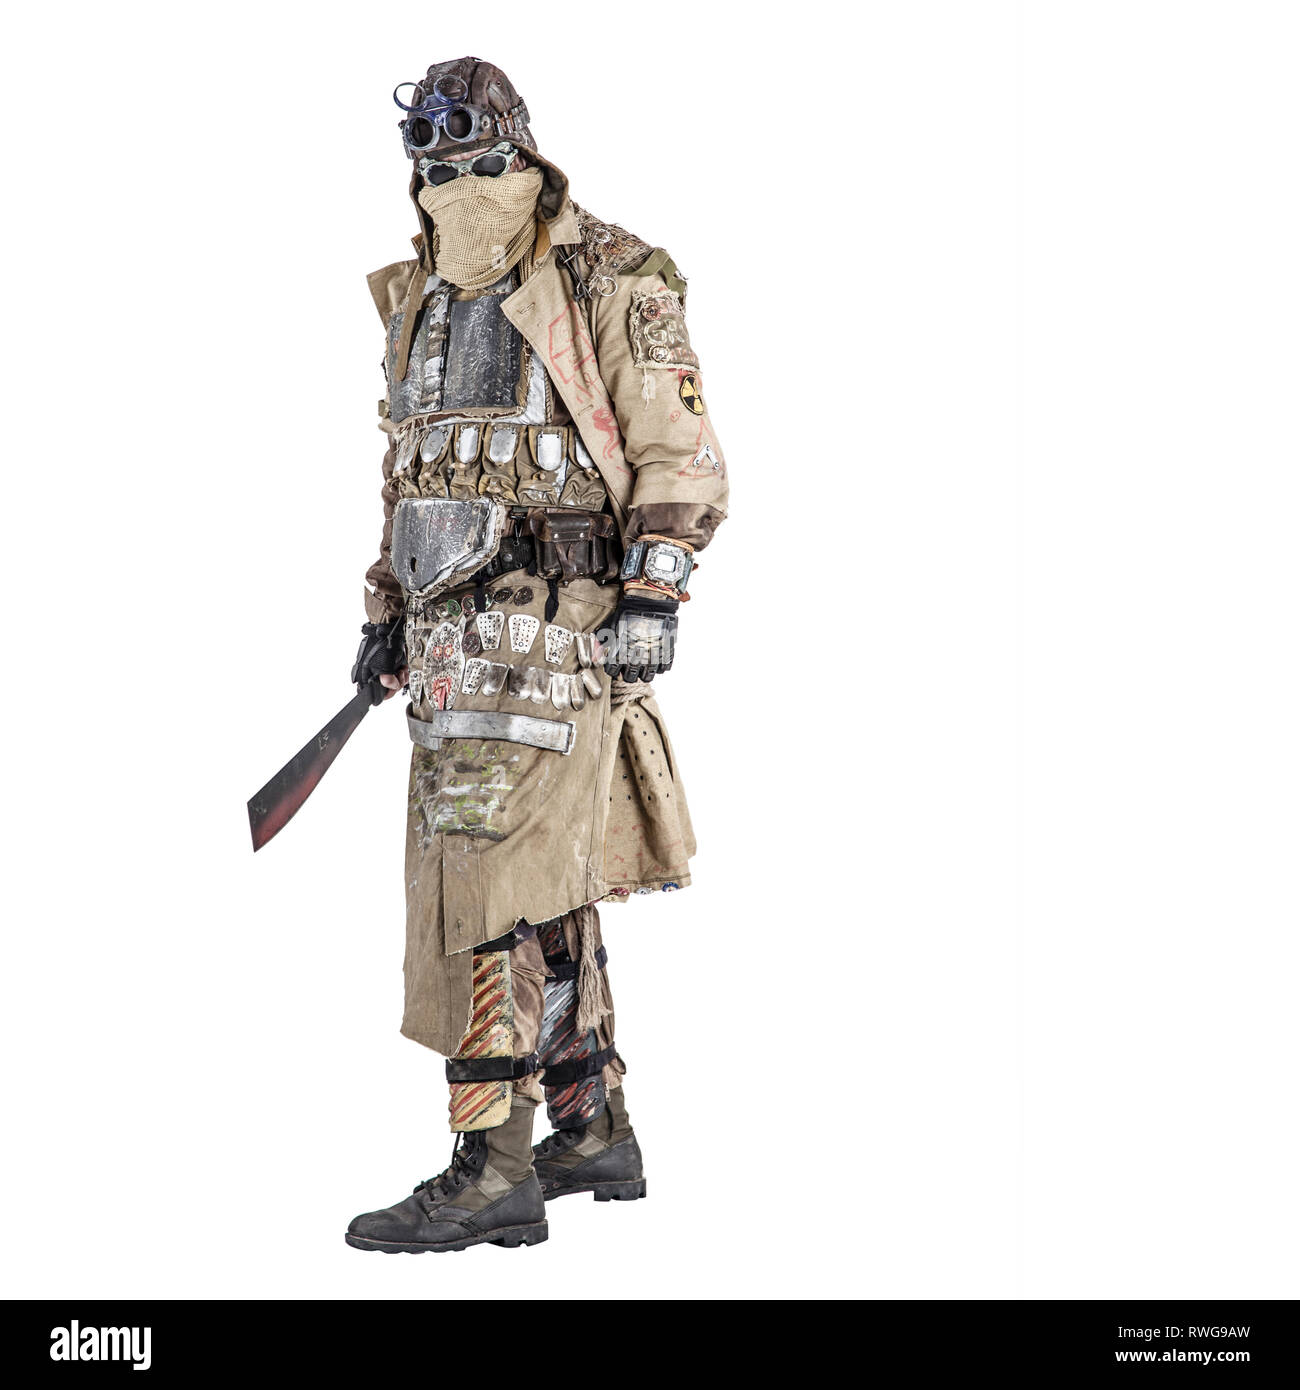 Scary post apocalyptic survivor in handmade armored clothes, armed with machete. - Stock Image